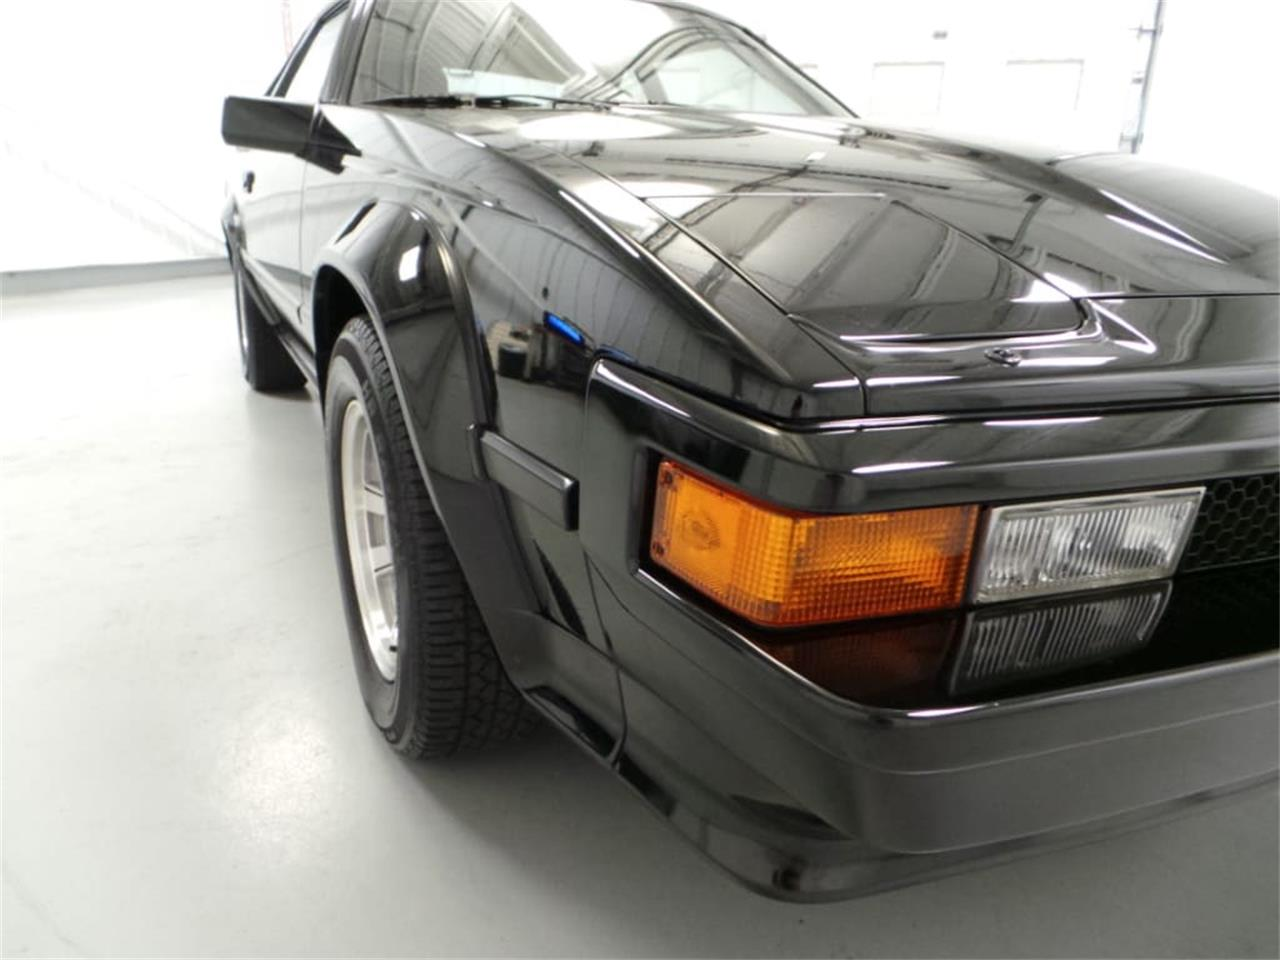 Large Picture of '84 Toyota Celica - $17,950.00 - JLCQ